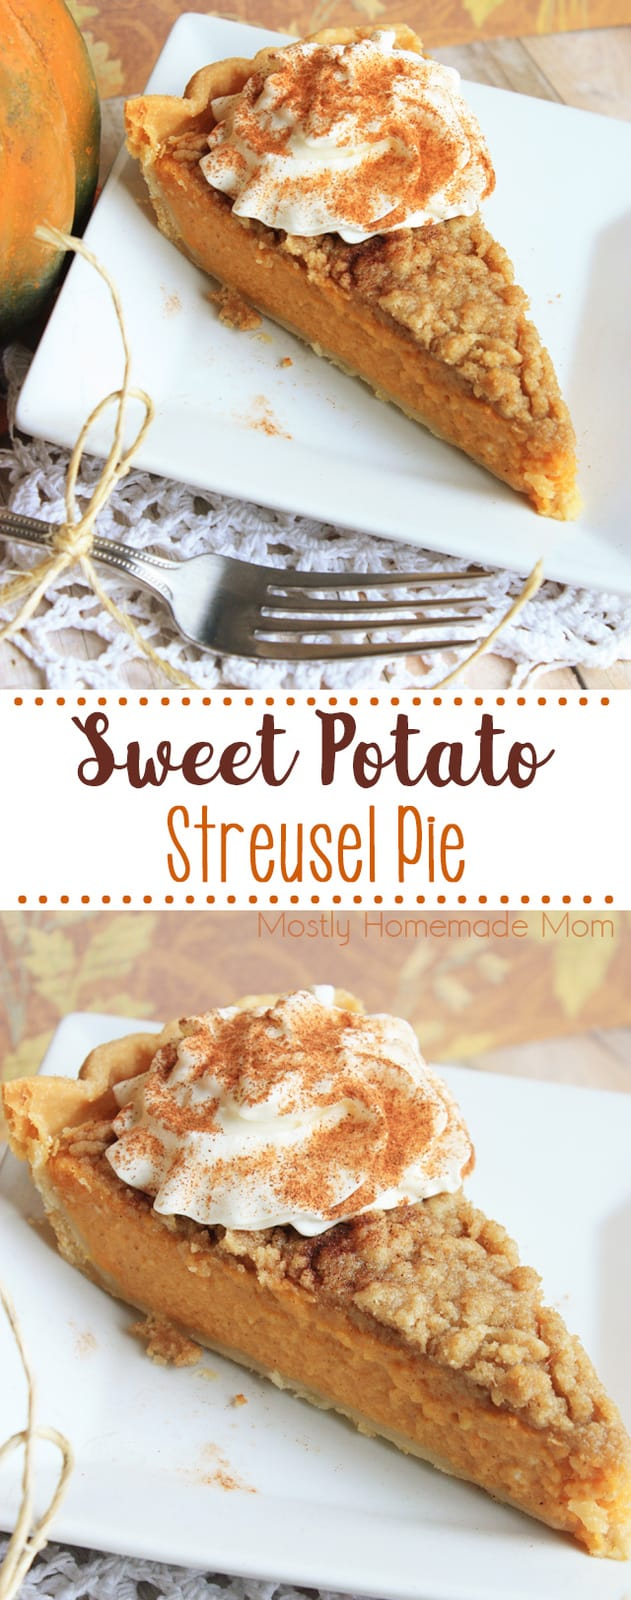 This incredible Sweet Potato Streusel Pie recipe will be the best dessert this holiday season! Fresh sweet potatoes, evaporated milk, and spices with a brown sugar topping! #sweetpotatopie #thanksgiving #christmas #recipe #dessert